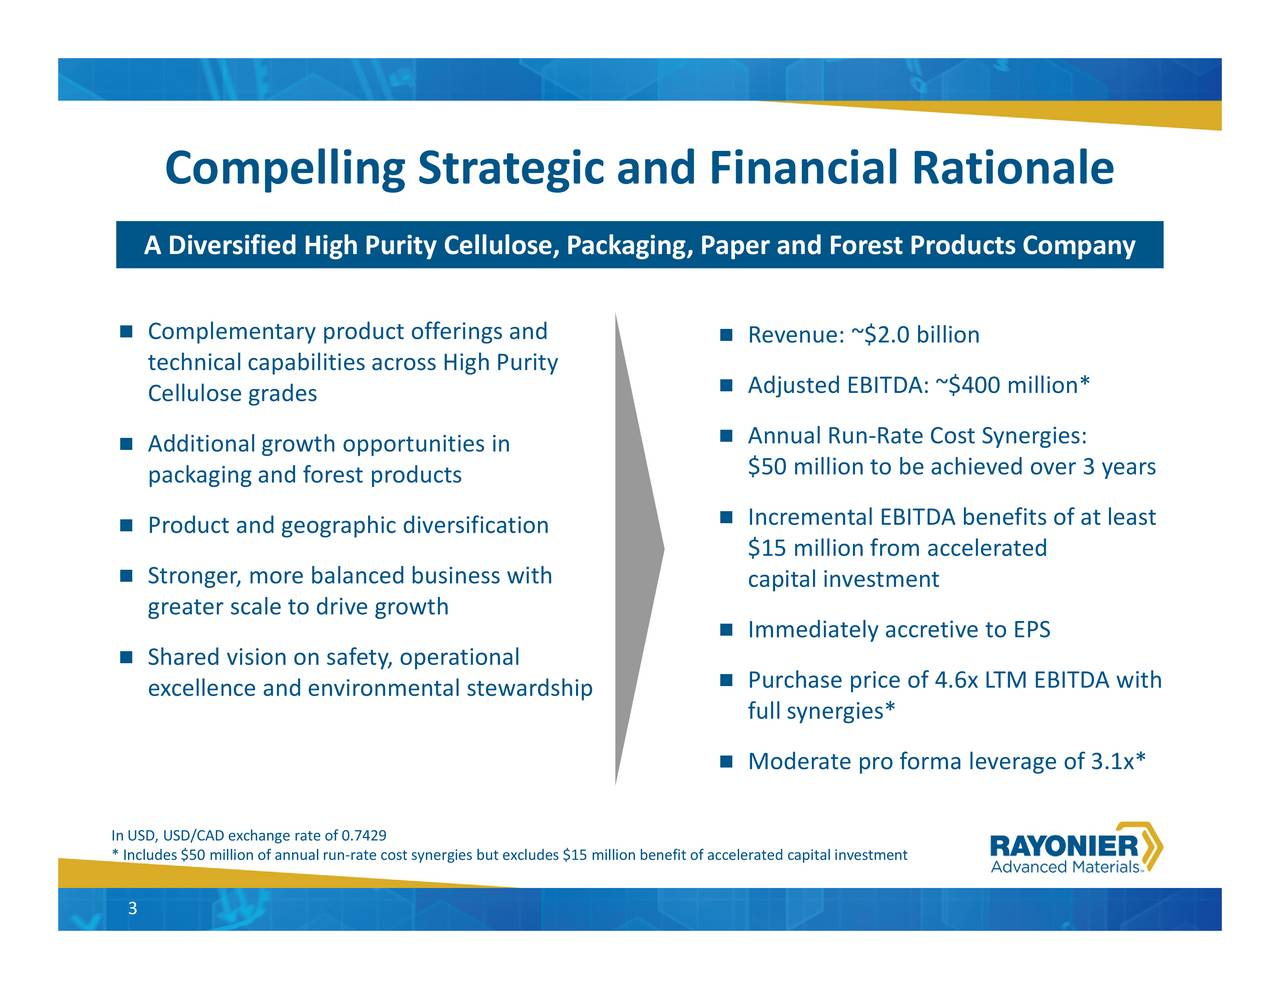 rgies but excludes $15 million benefit of accelerat Compelling Strategic and Financial Rationale A Diversified High Purity Cellulose, Packaging, Papeersaiwiyoopmeintolntlewardship In*n,ud/$50mxianfrneaf.n-r2a9te cost syne